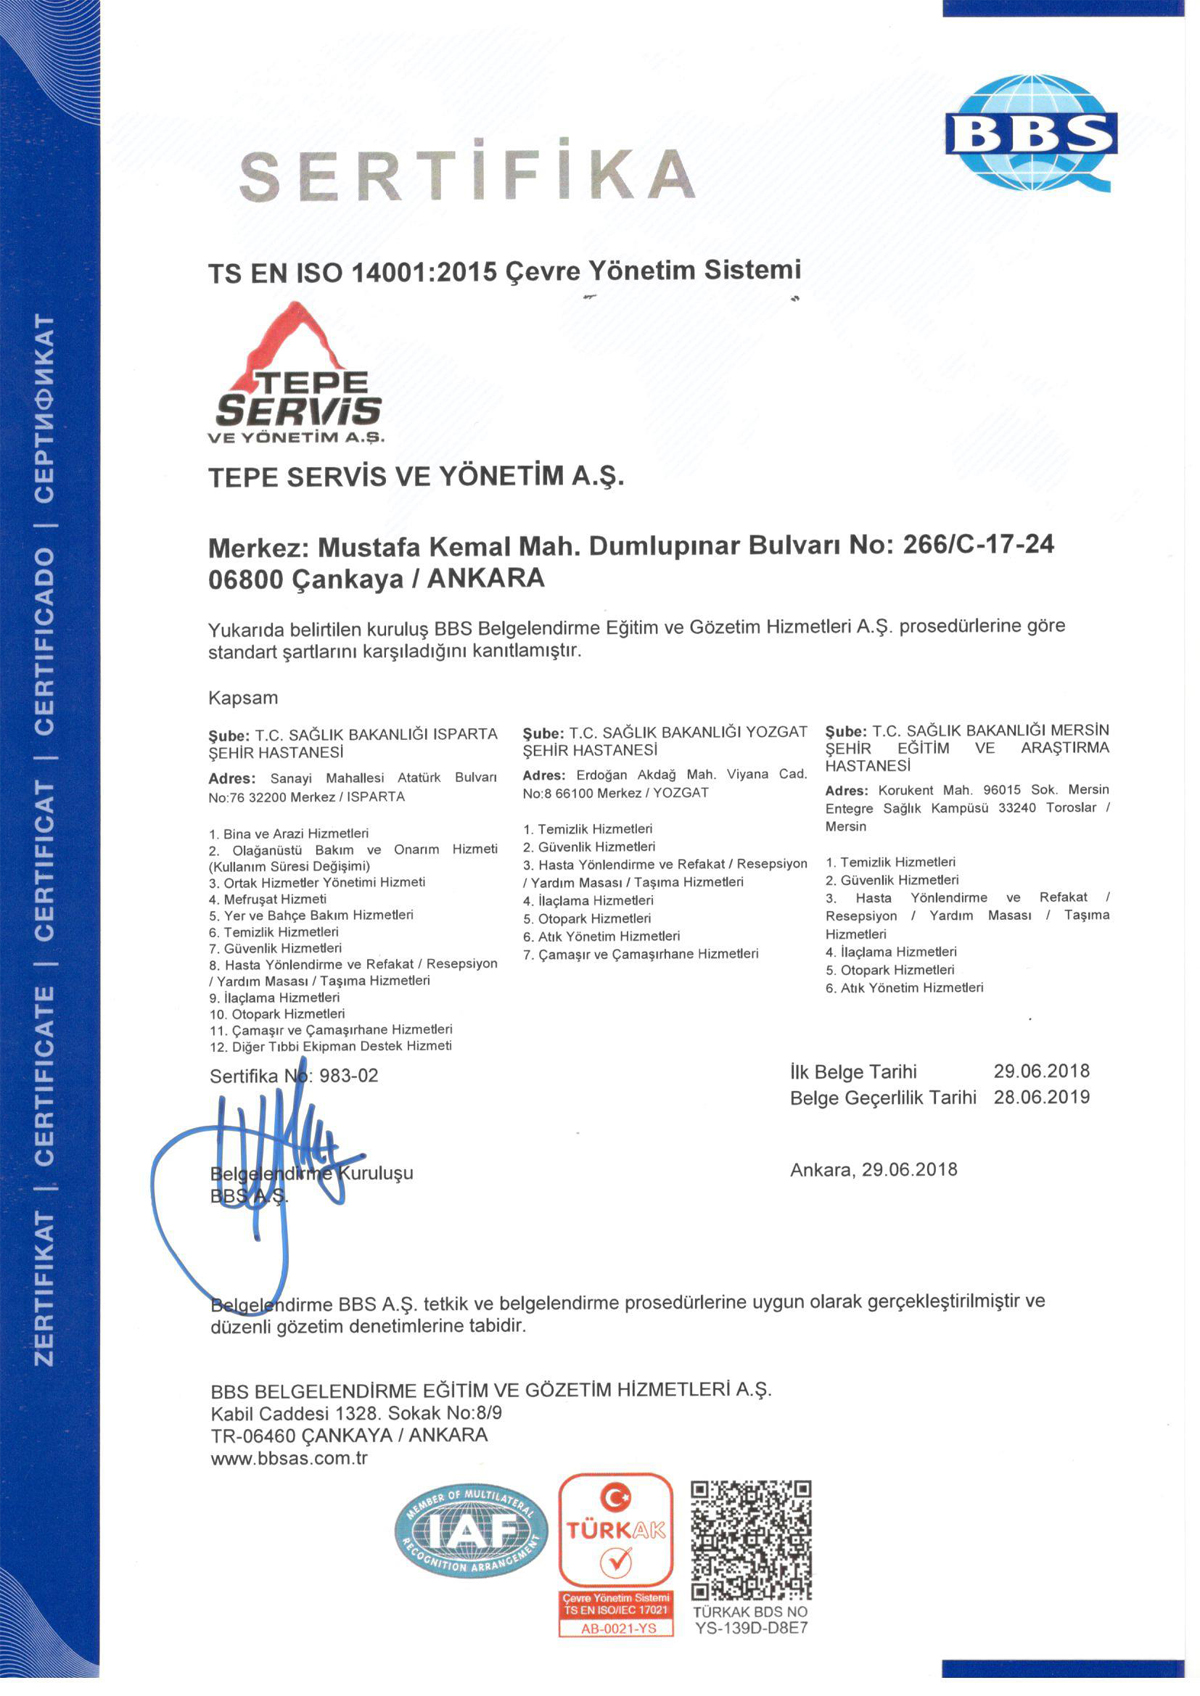 PPP - İSO 14001